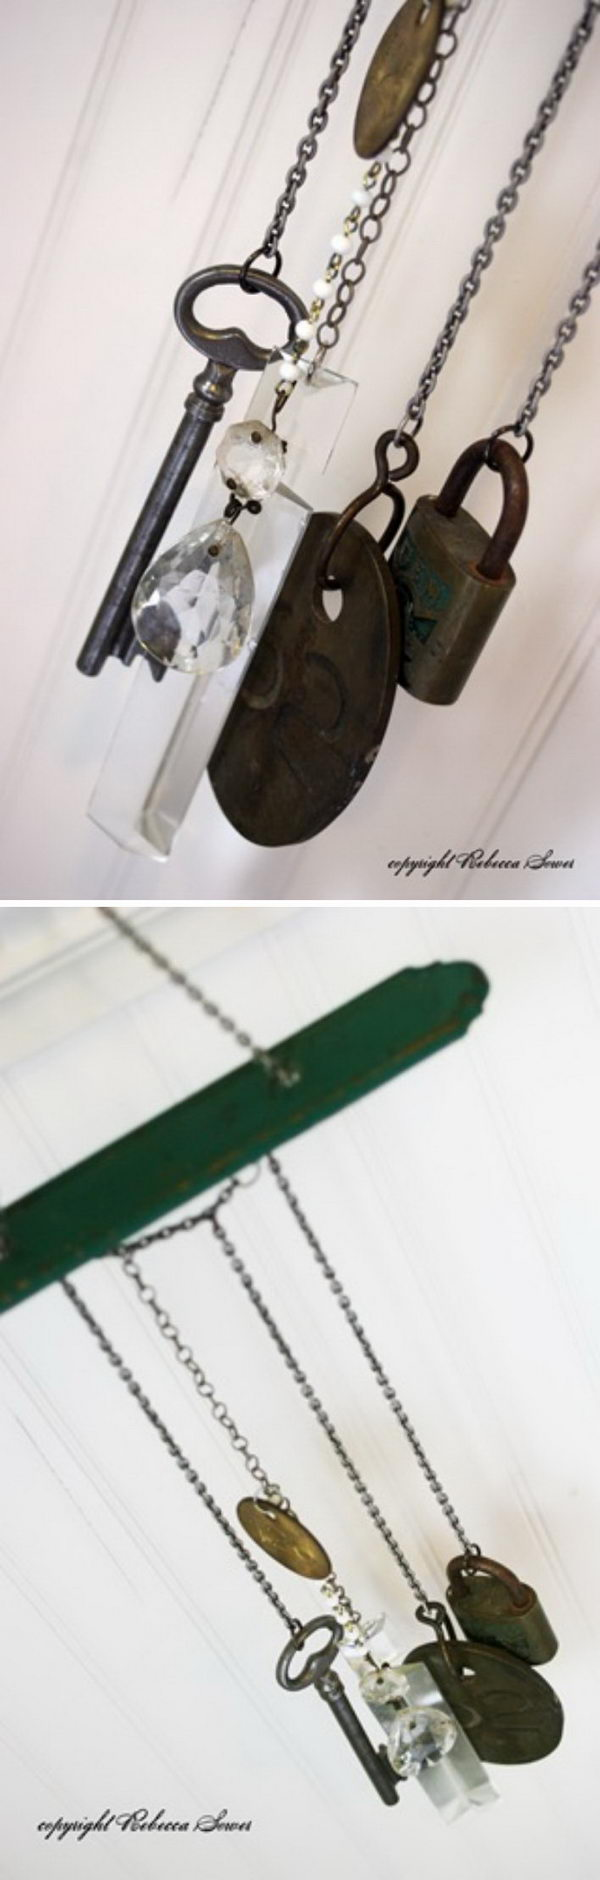 DIY Wind Chime from Upcycled Keys and Other Assorted Junk Items.